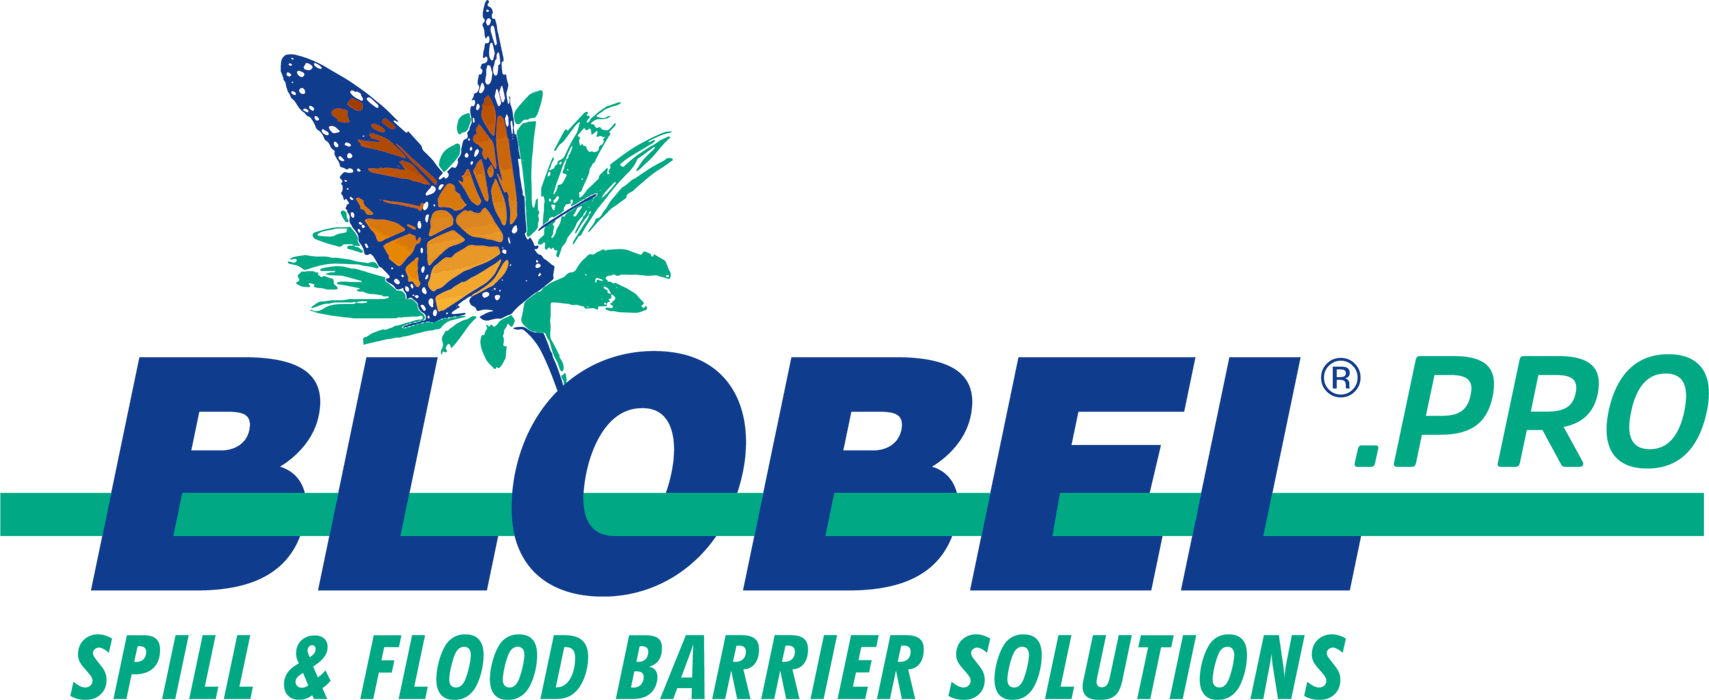 blobel spill barrier and flood barrier logo